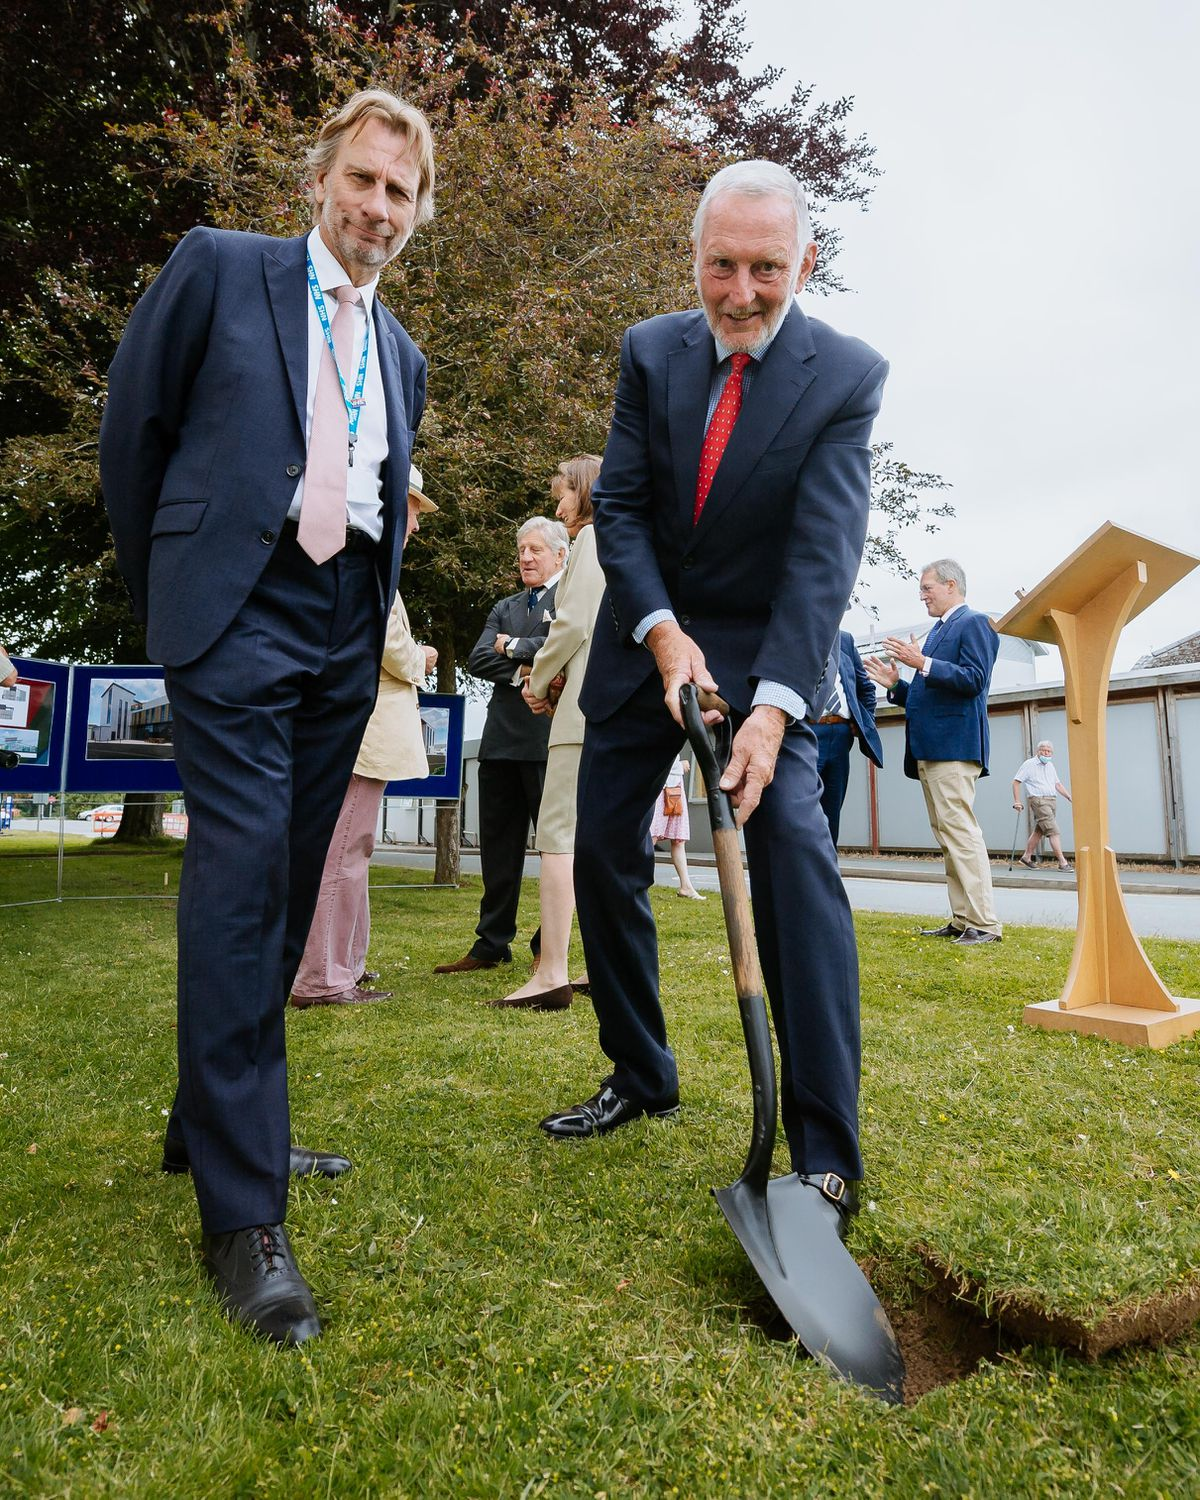 Air Vice Marshal Anthony J. Stables cuts the first turf with RJAH trust chairman Frank Collins